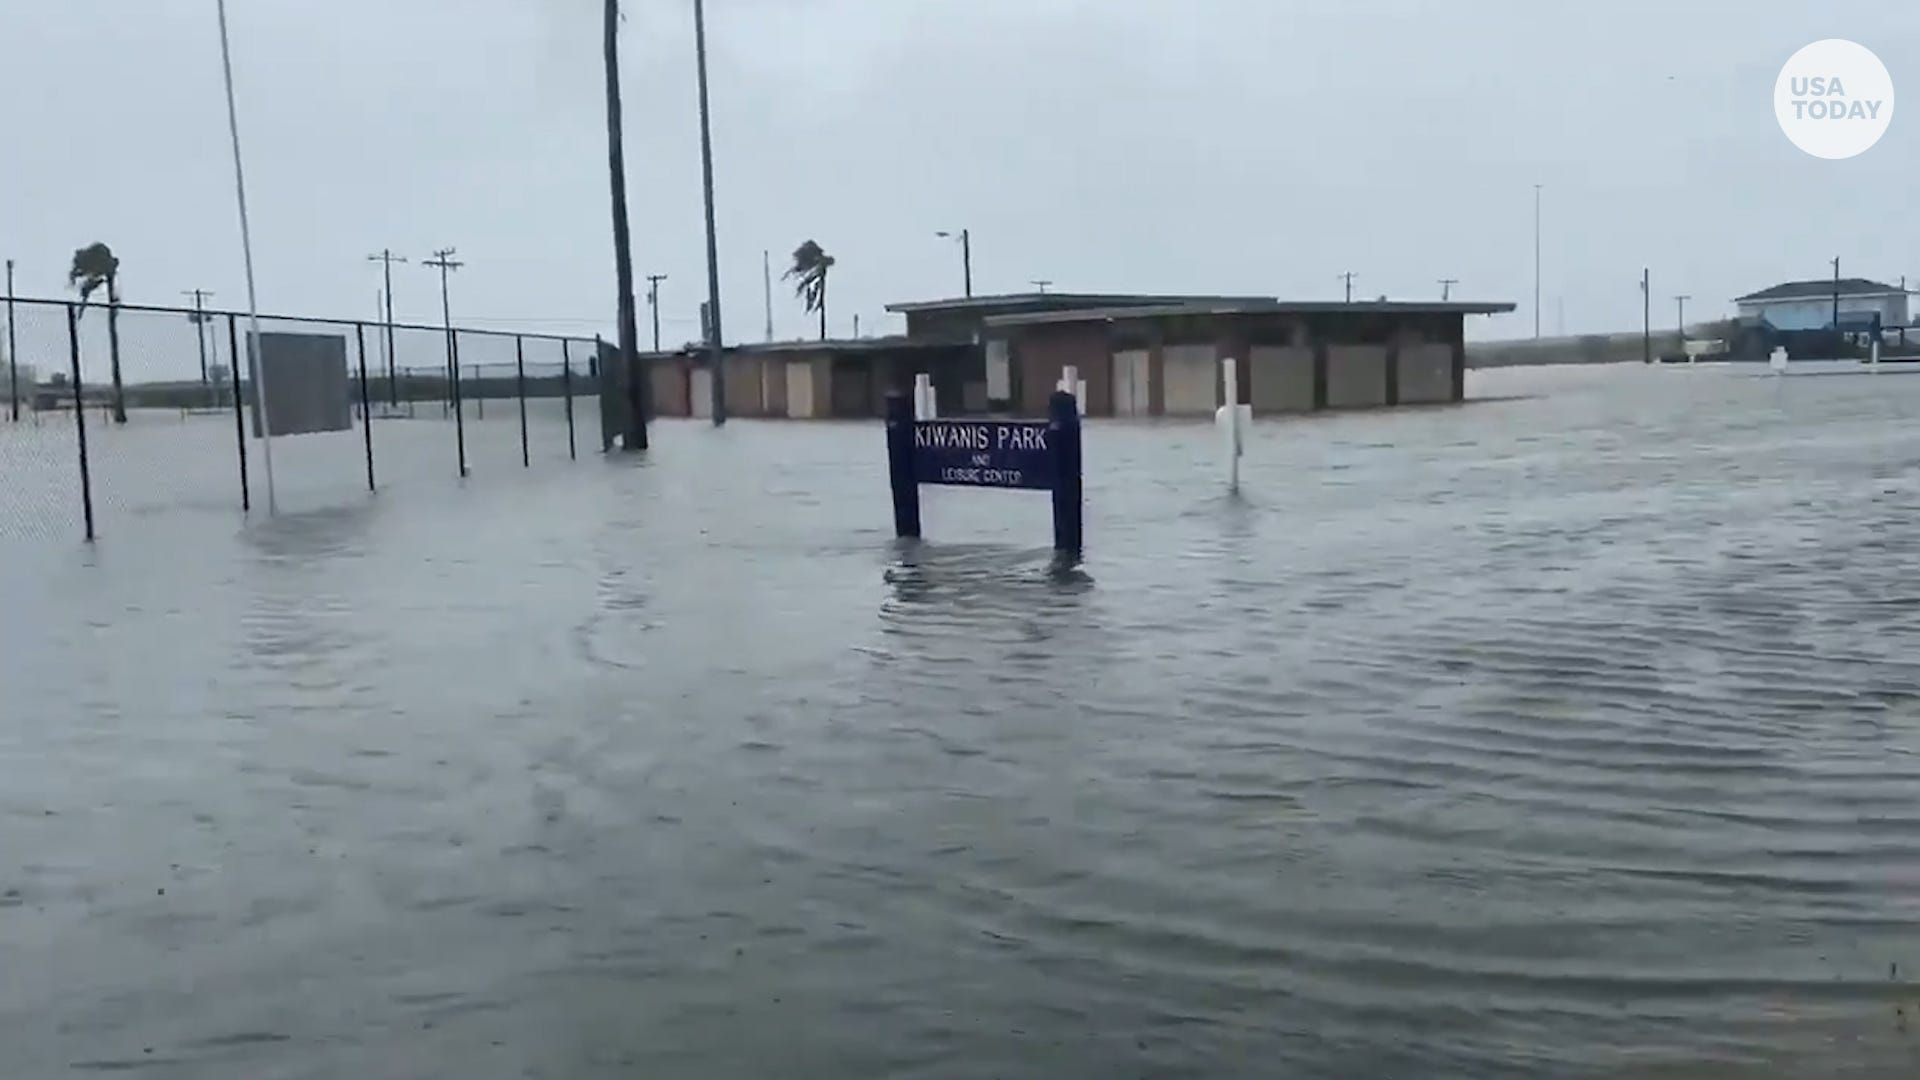 Hurricane Update Hanna Floods Parts Of South Texas Https Ift Tt 2d8jrfi Storyful Usa Today Wochit In 2020 Atlantic Hurricane World Water Day Flood